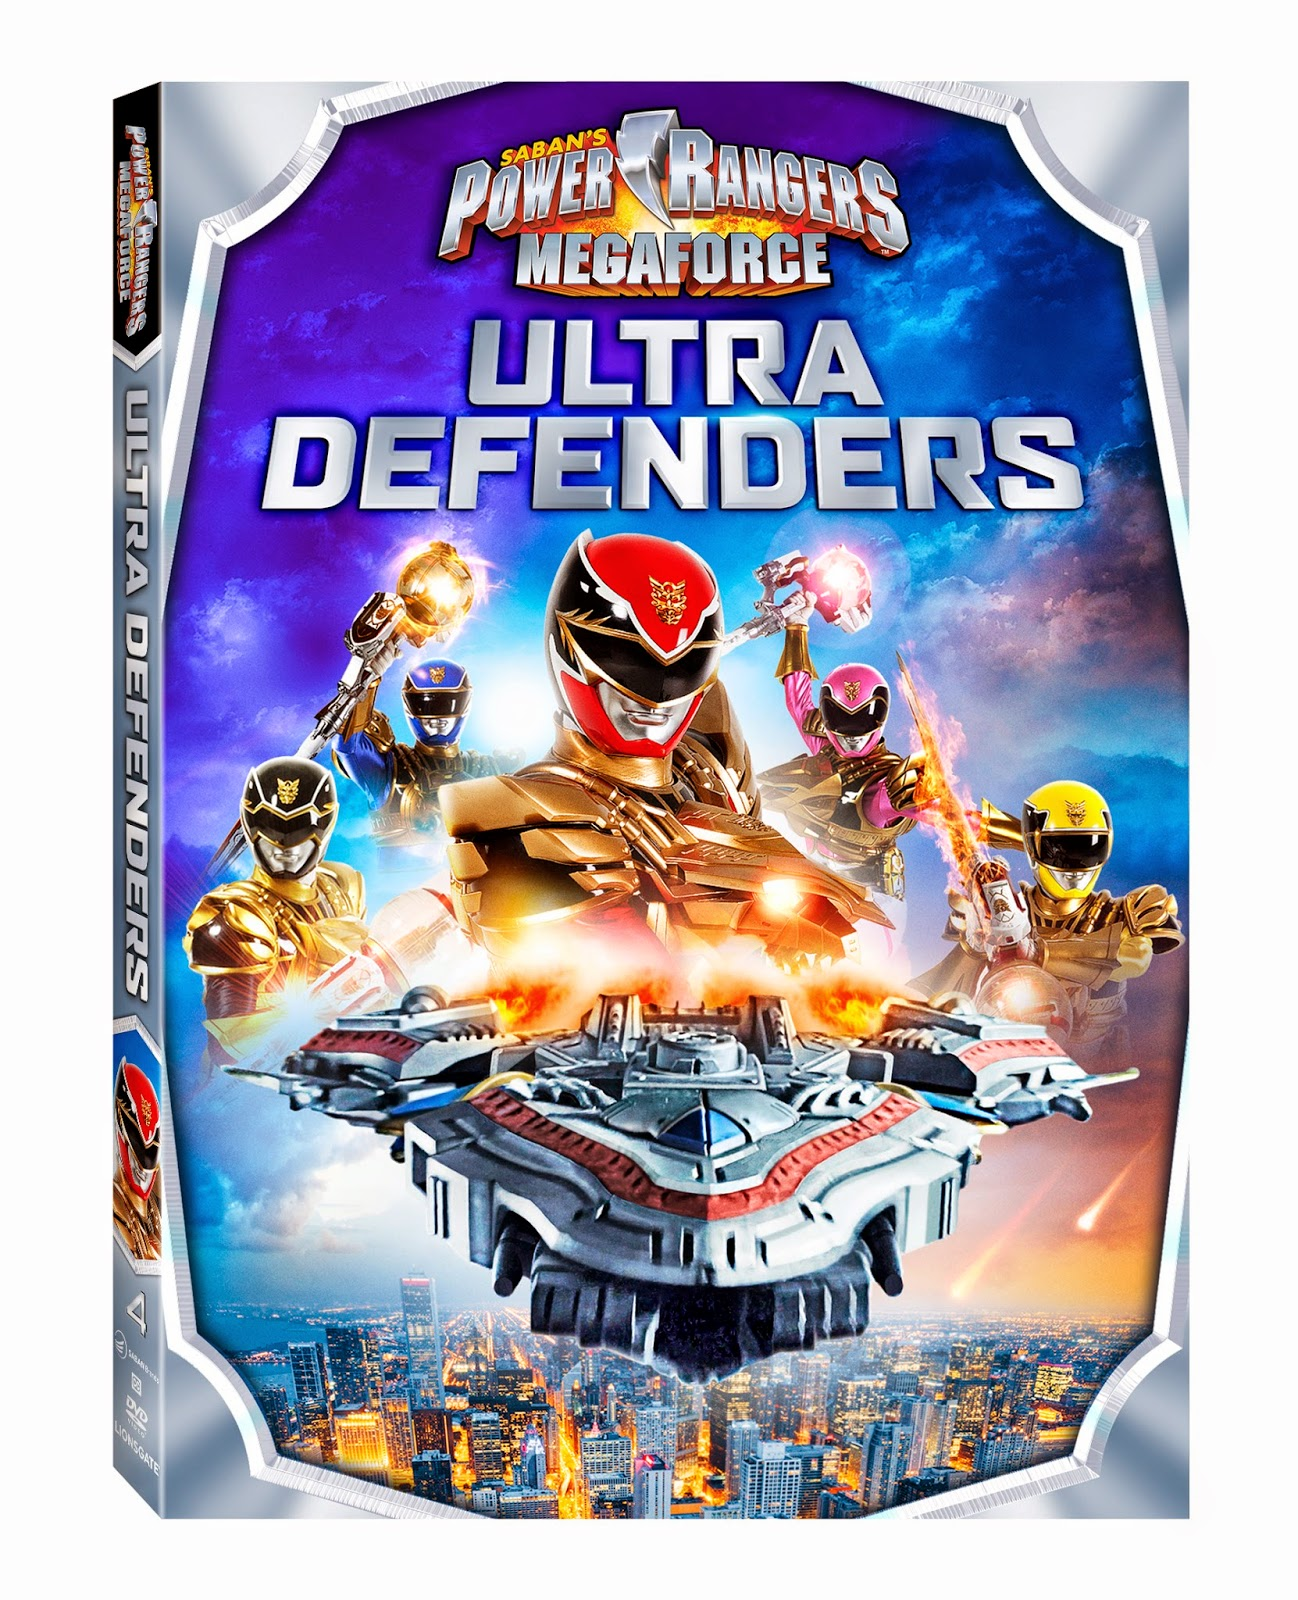 DVD Review - Power Rangers Megaforce: Ultimate Defenders